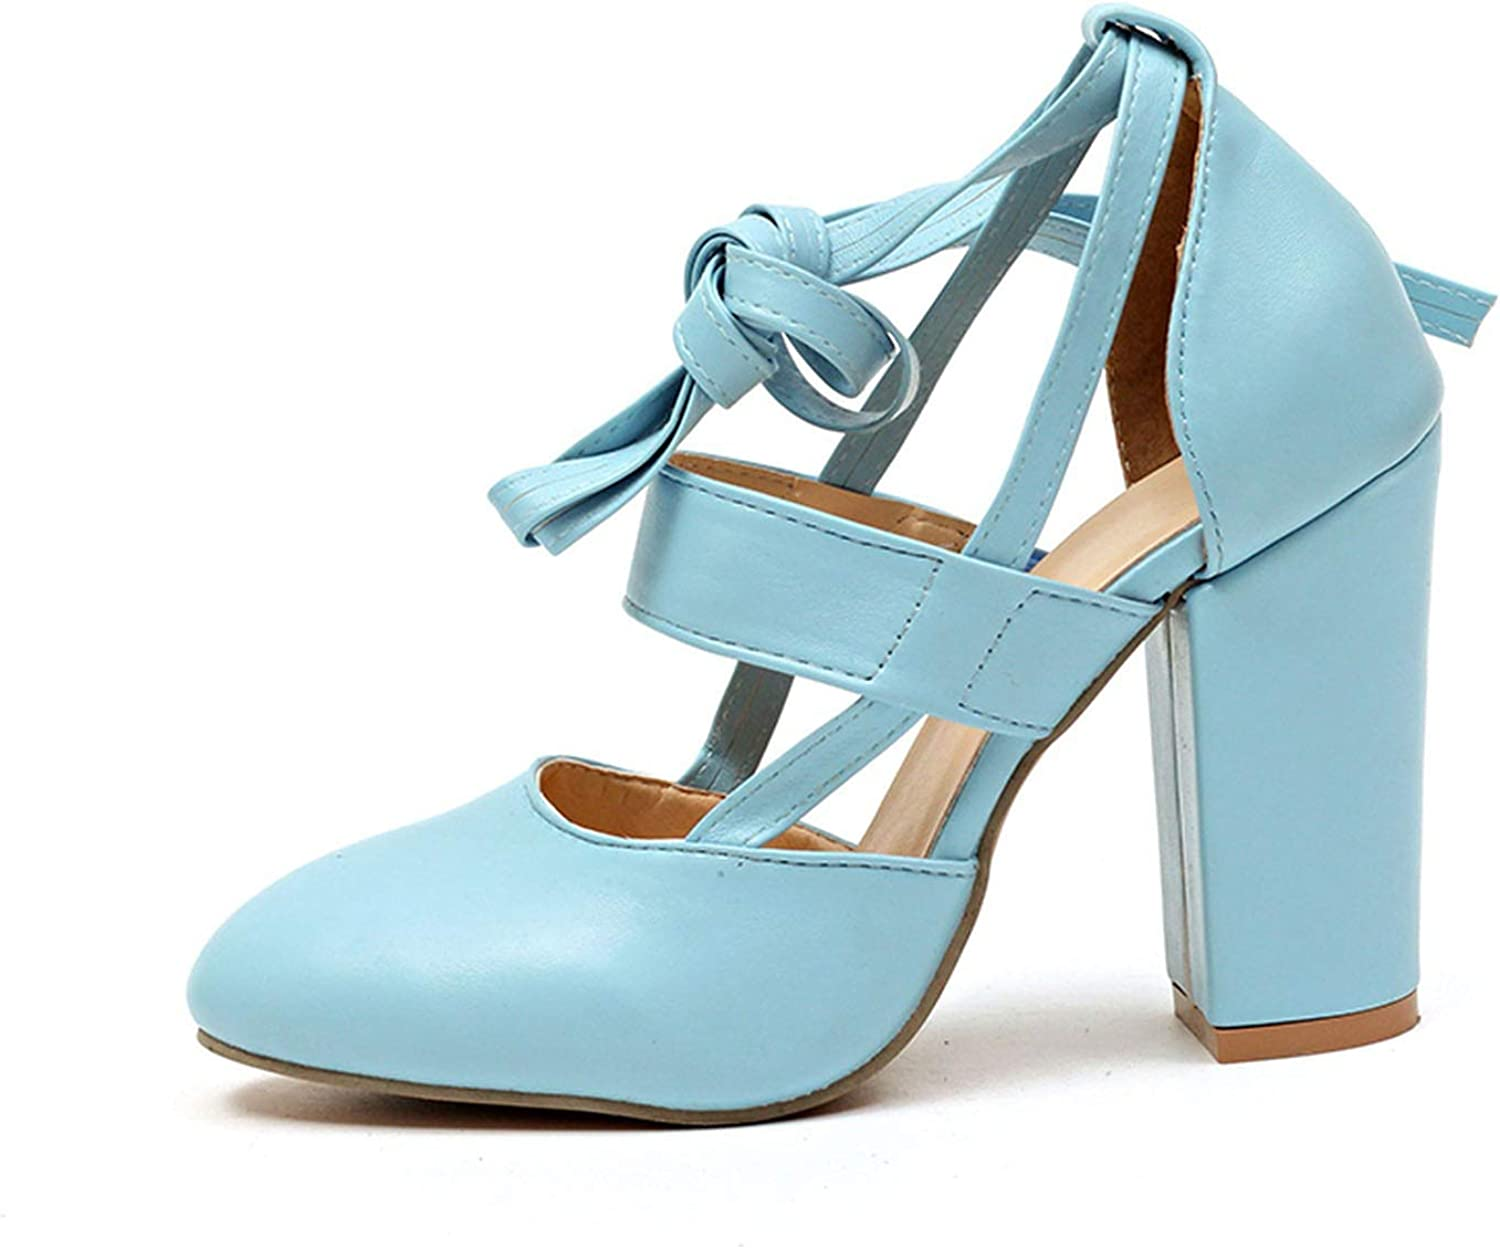 Monica's house Plus Size Female Ankle Strap High Heels shoes Thick Heel for Women Party Wedding,bluee-D2314,6